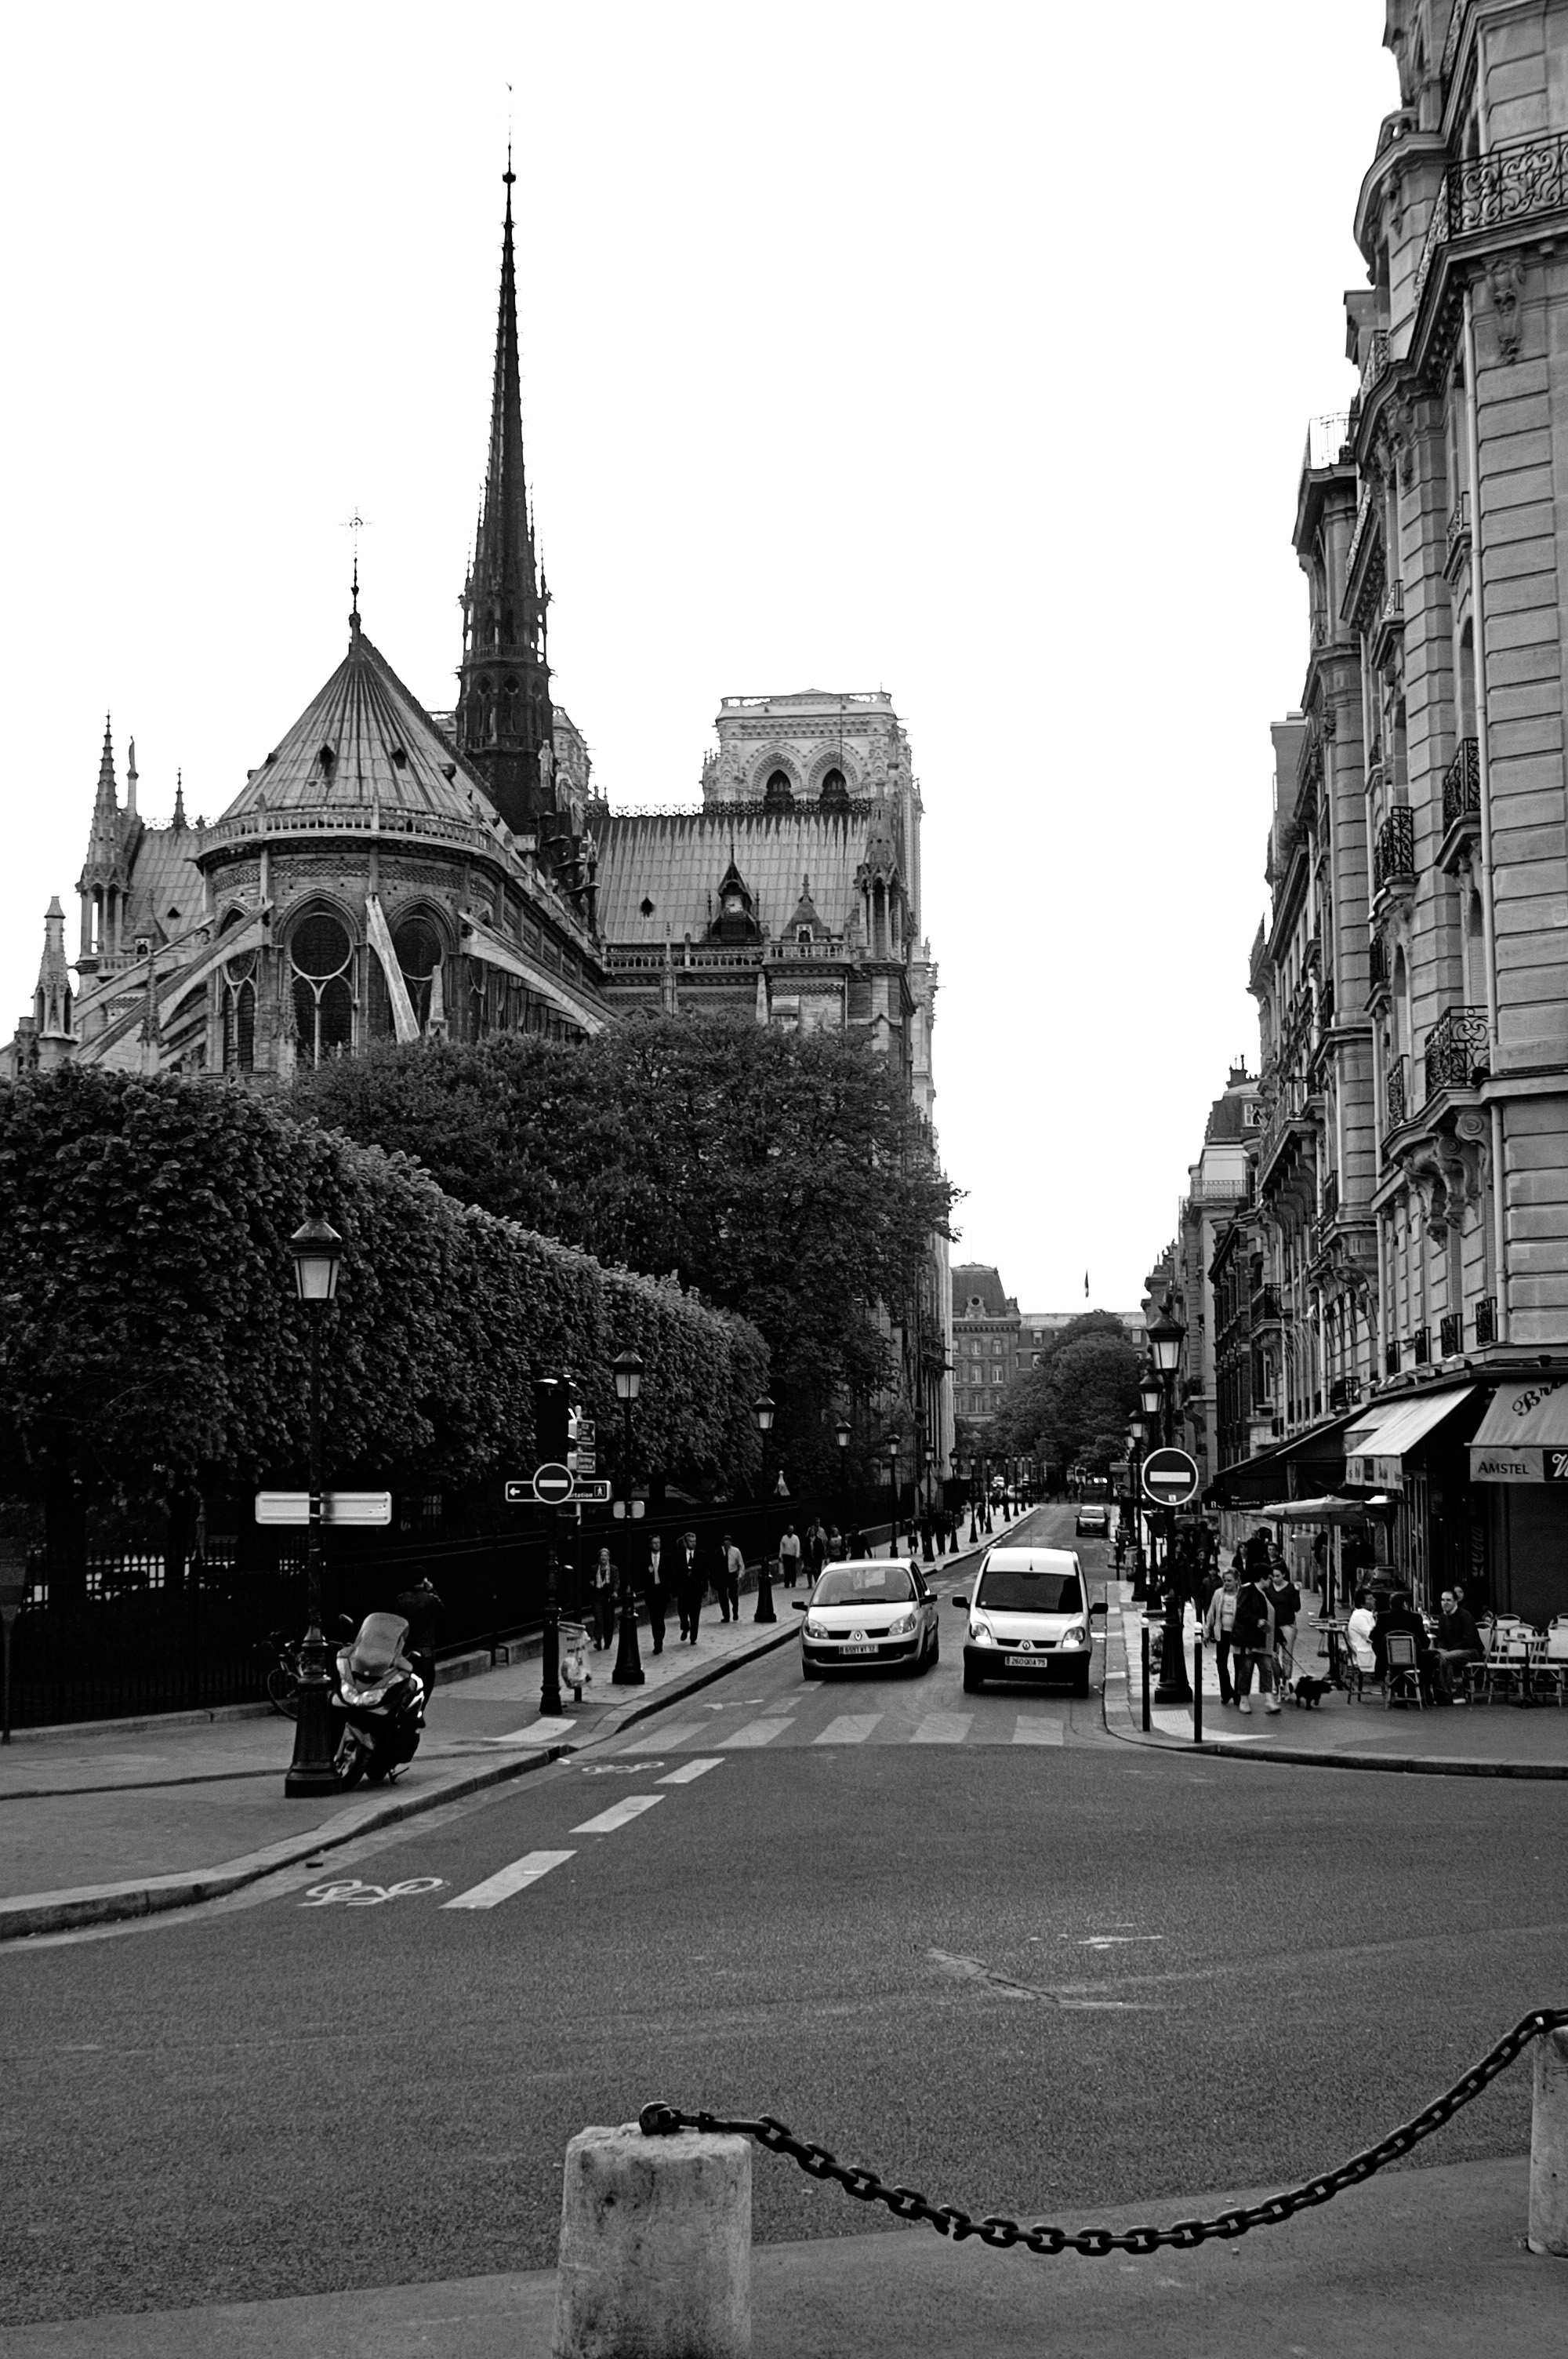 Streets of Notre Dame